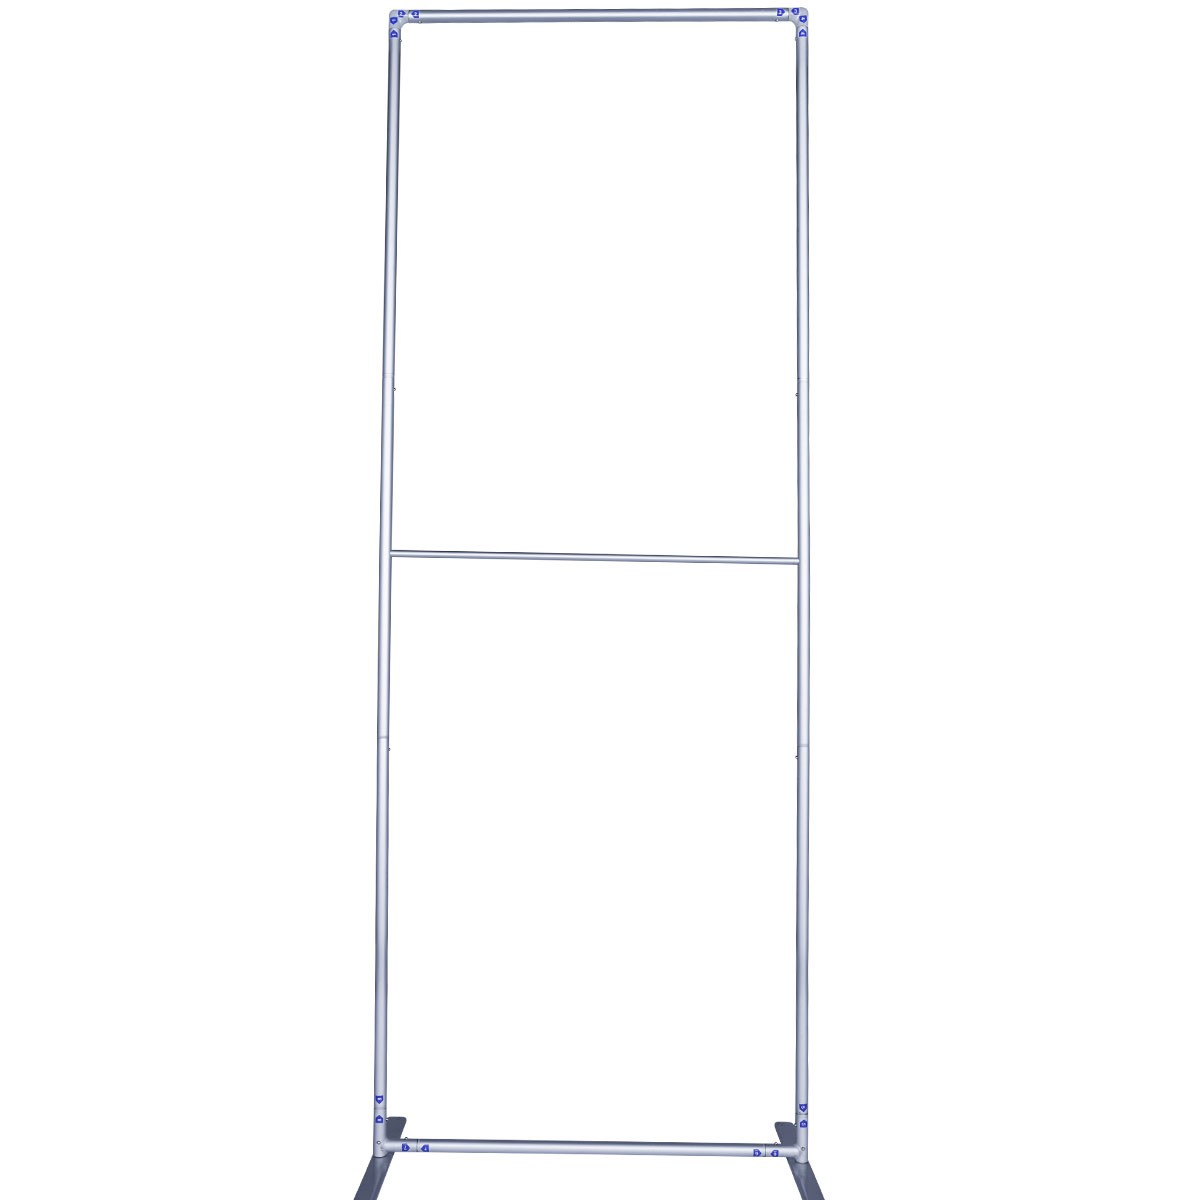 Hardware Frame for Economy Fabric Banner Stands - Profile View